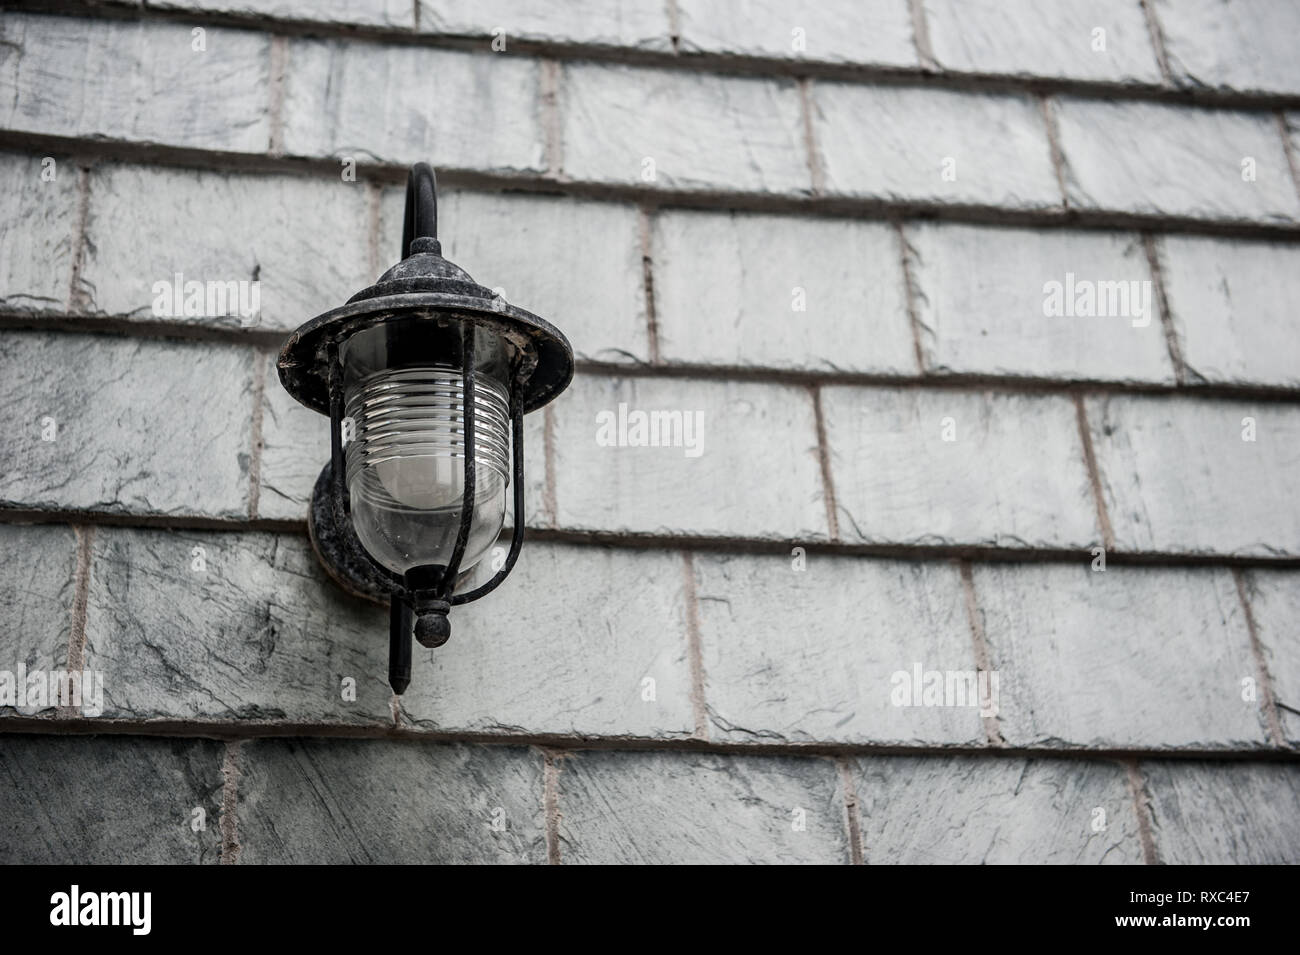 Vintage Industrial Outdoor Wall Lamp On A Grey Slate Wall With Space For Copy To The Right Stock Photo Alamy